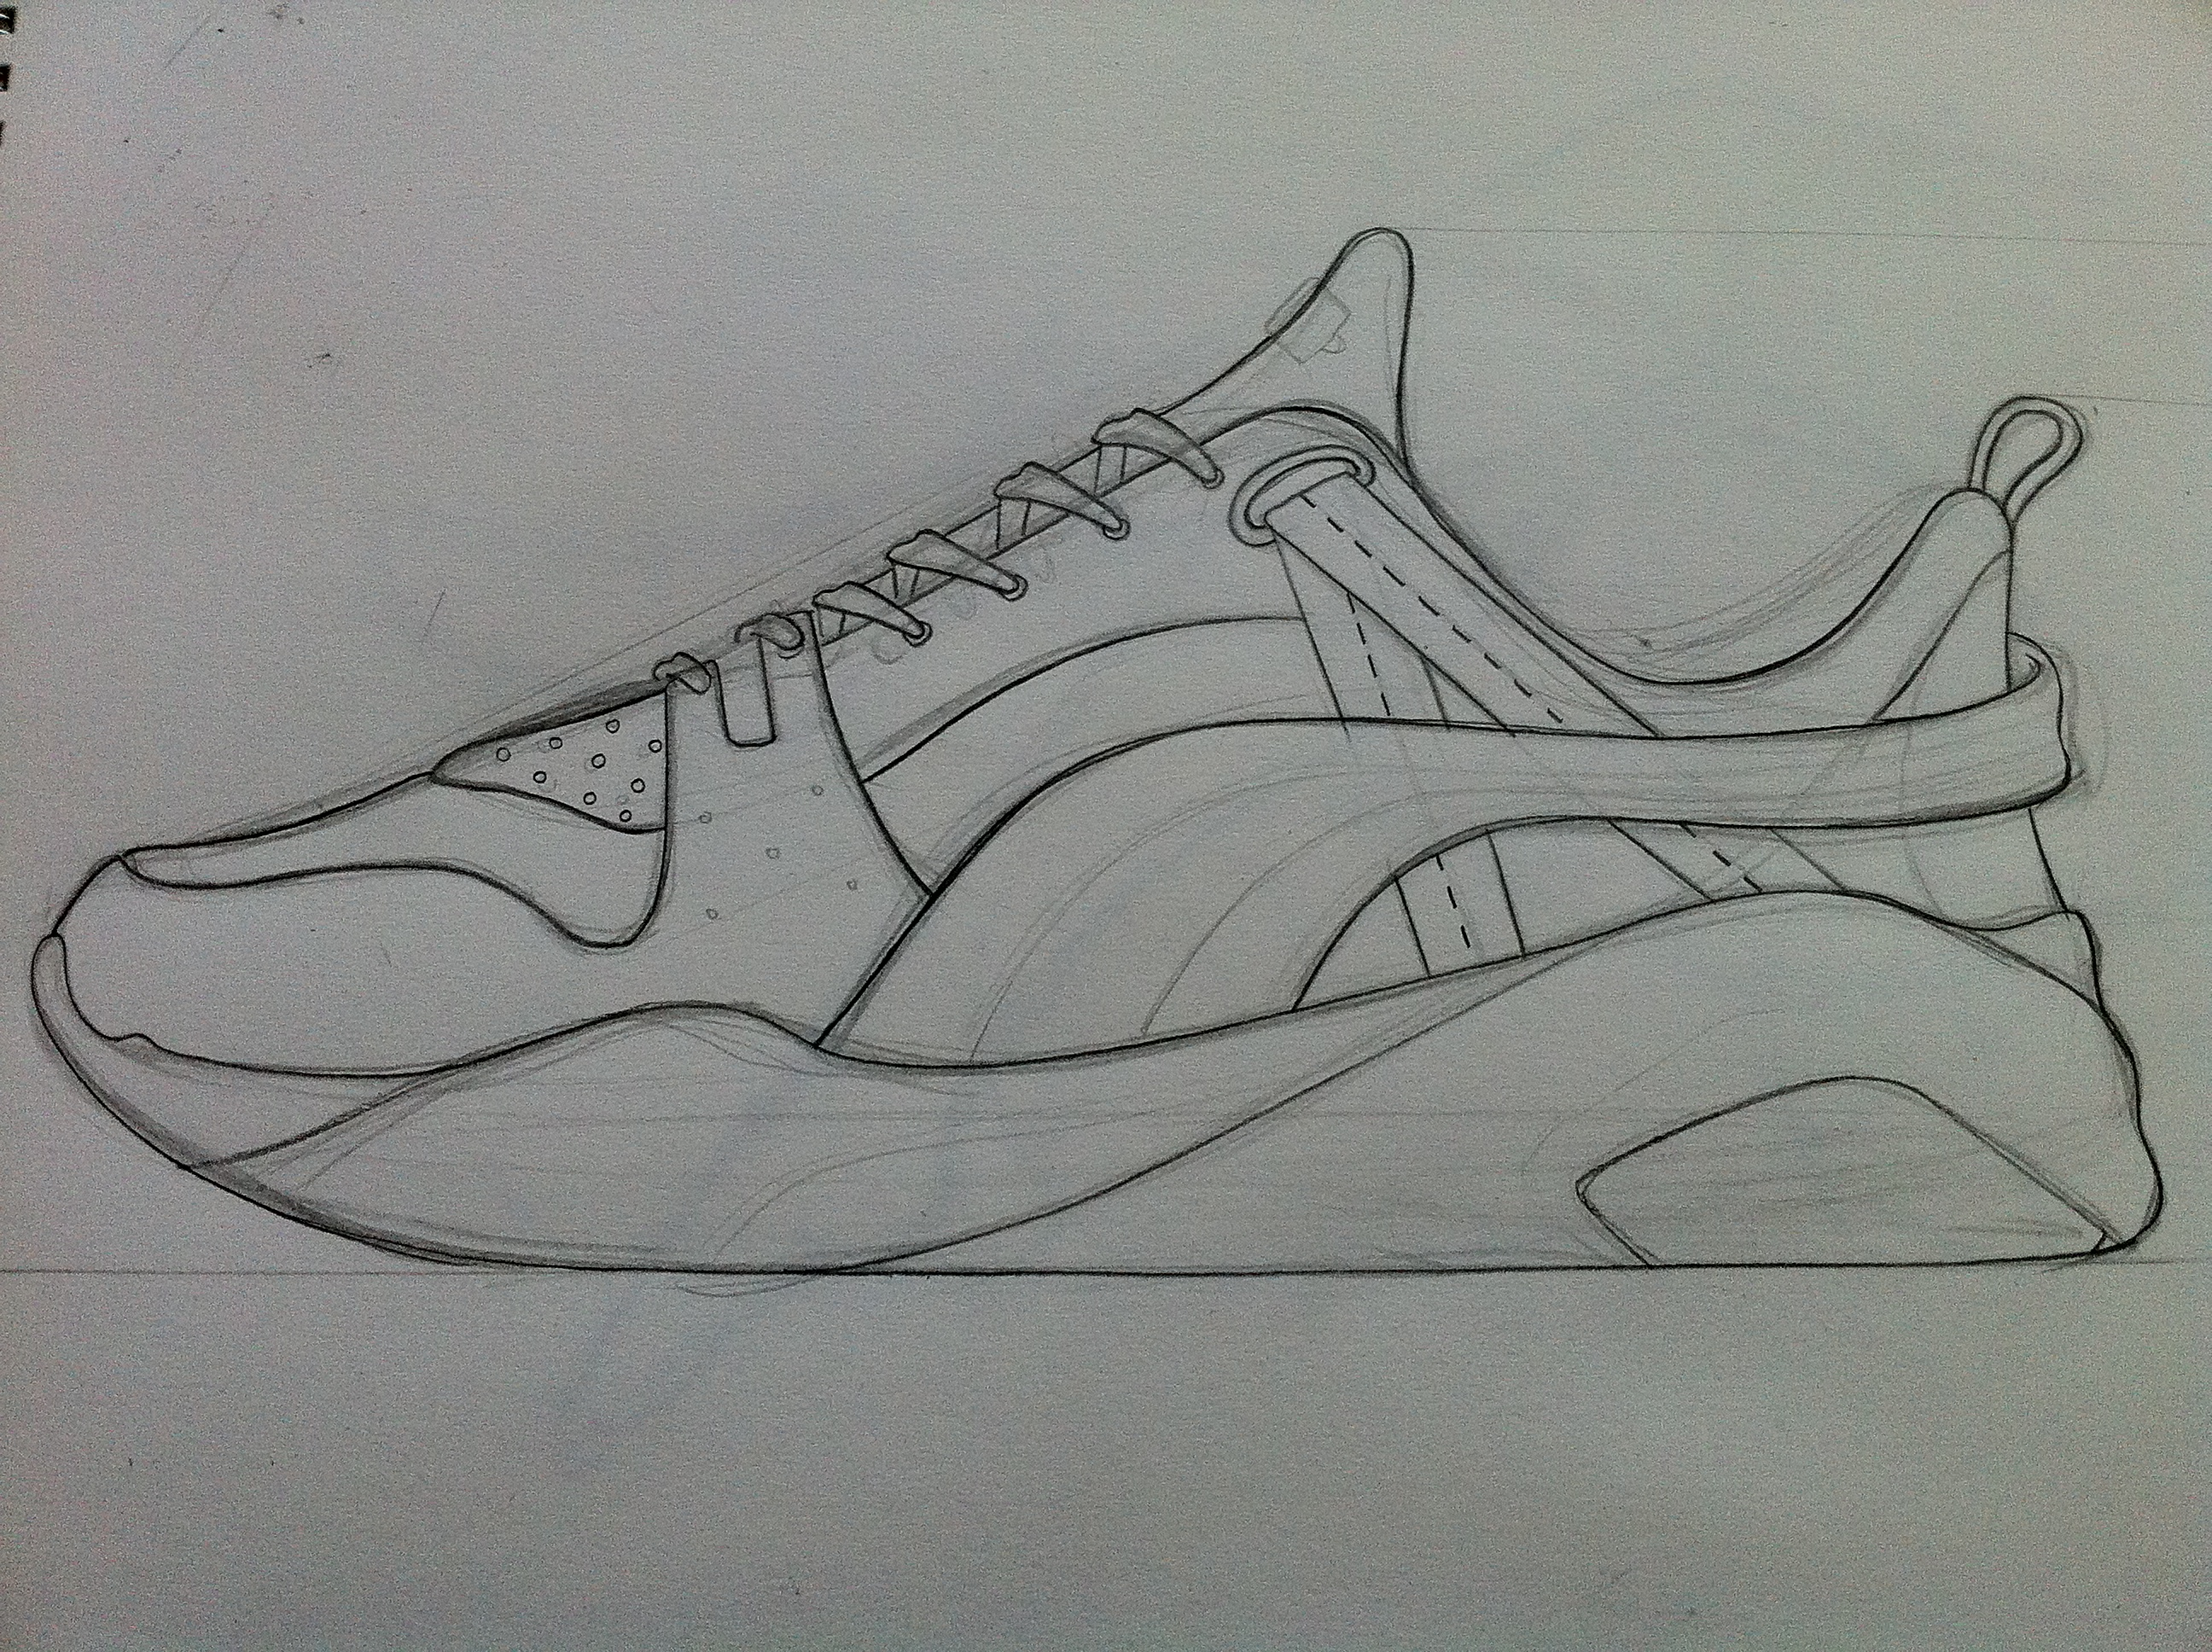 Drawn shoe puma Inspired own Pinterest Design images